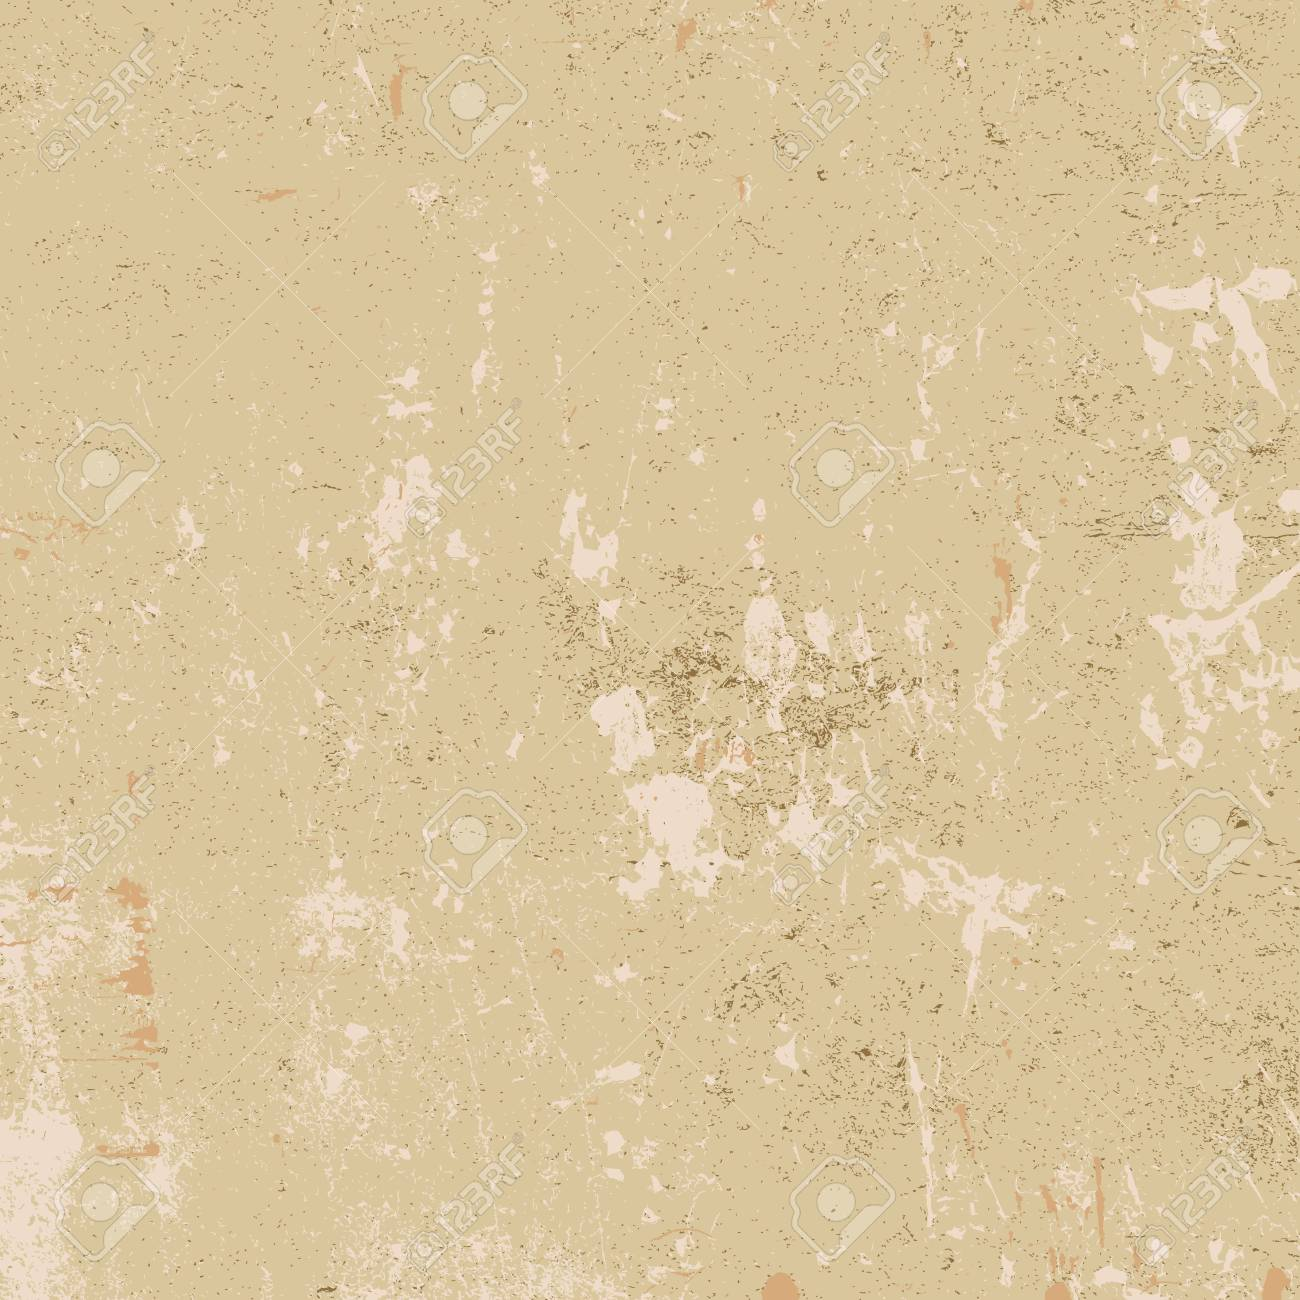 Distressed Texture In Beige Colors. Empty Aged Grunge Background ...